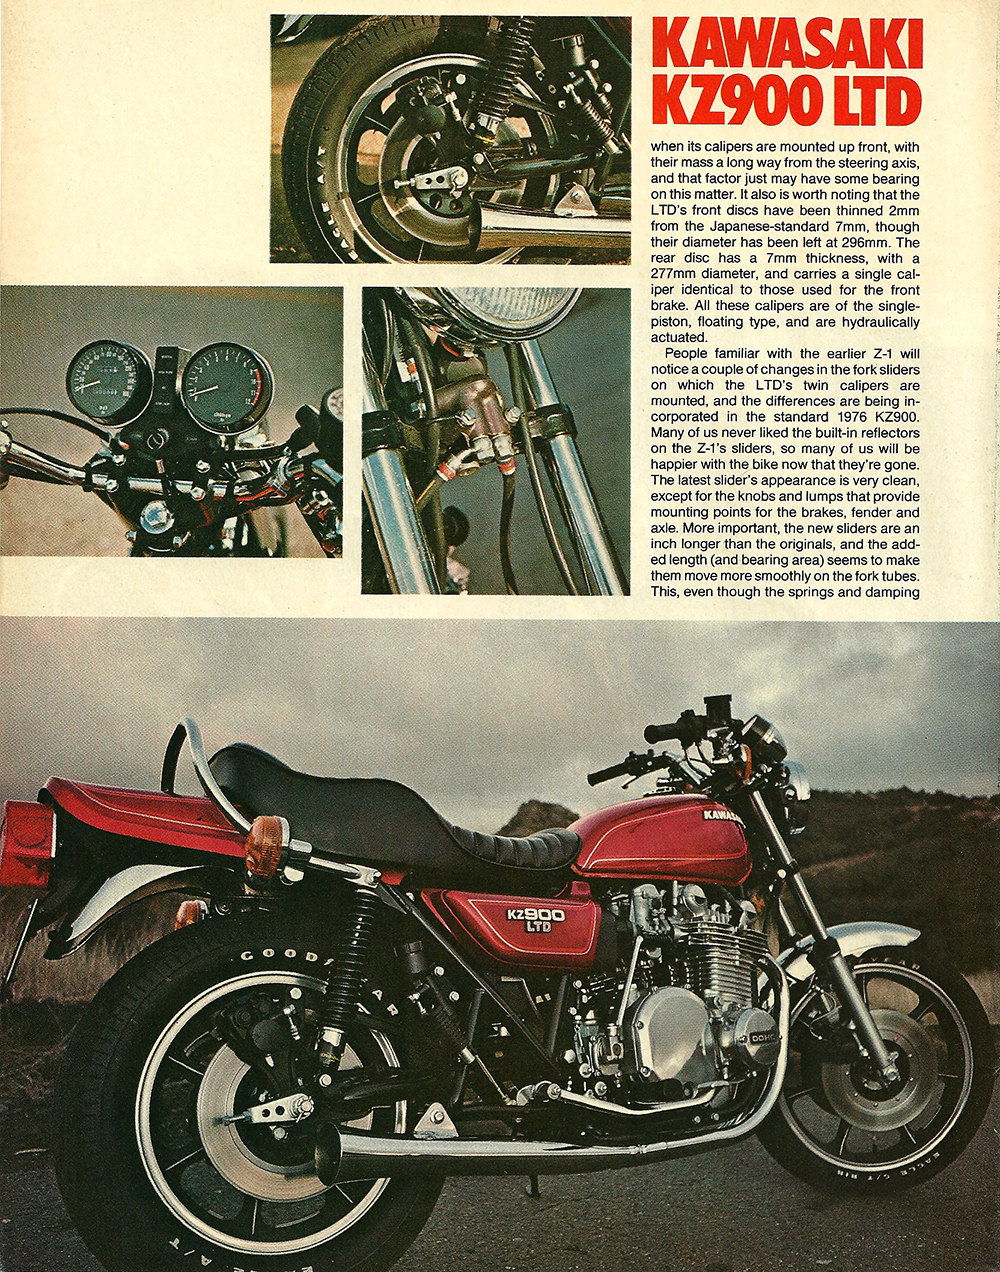 1976 Kawasaki KZ900 LTD road test 3.jpg